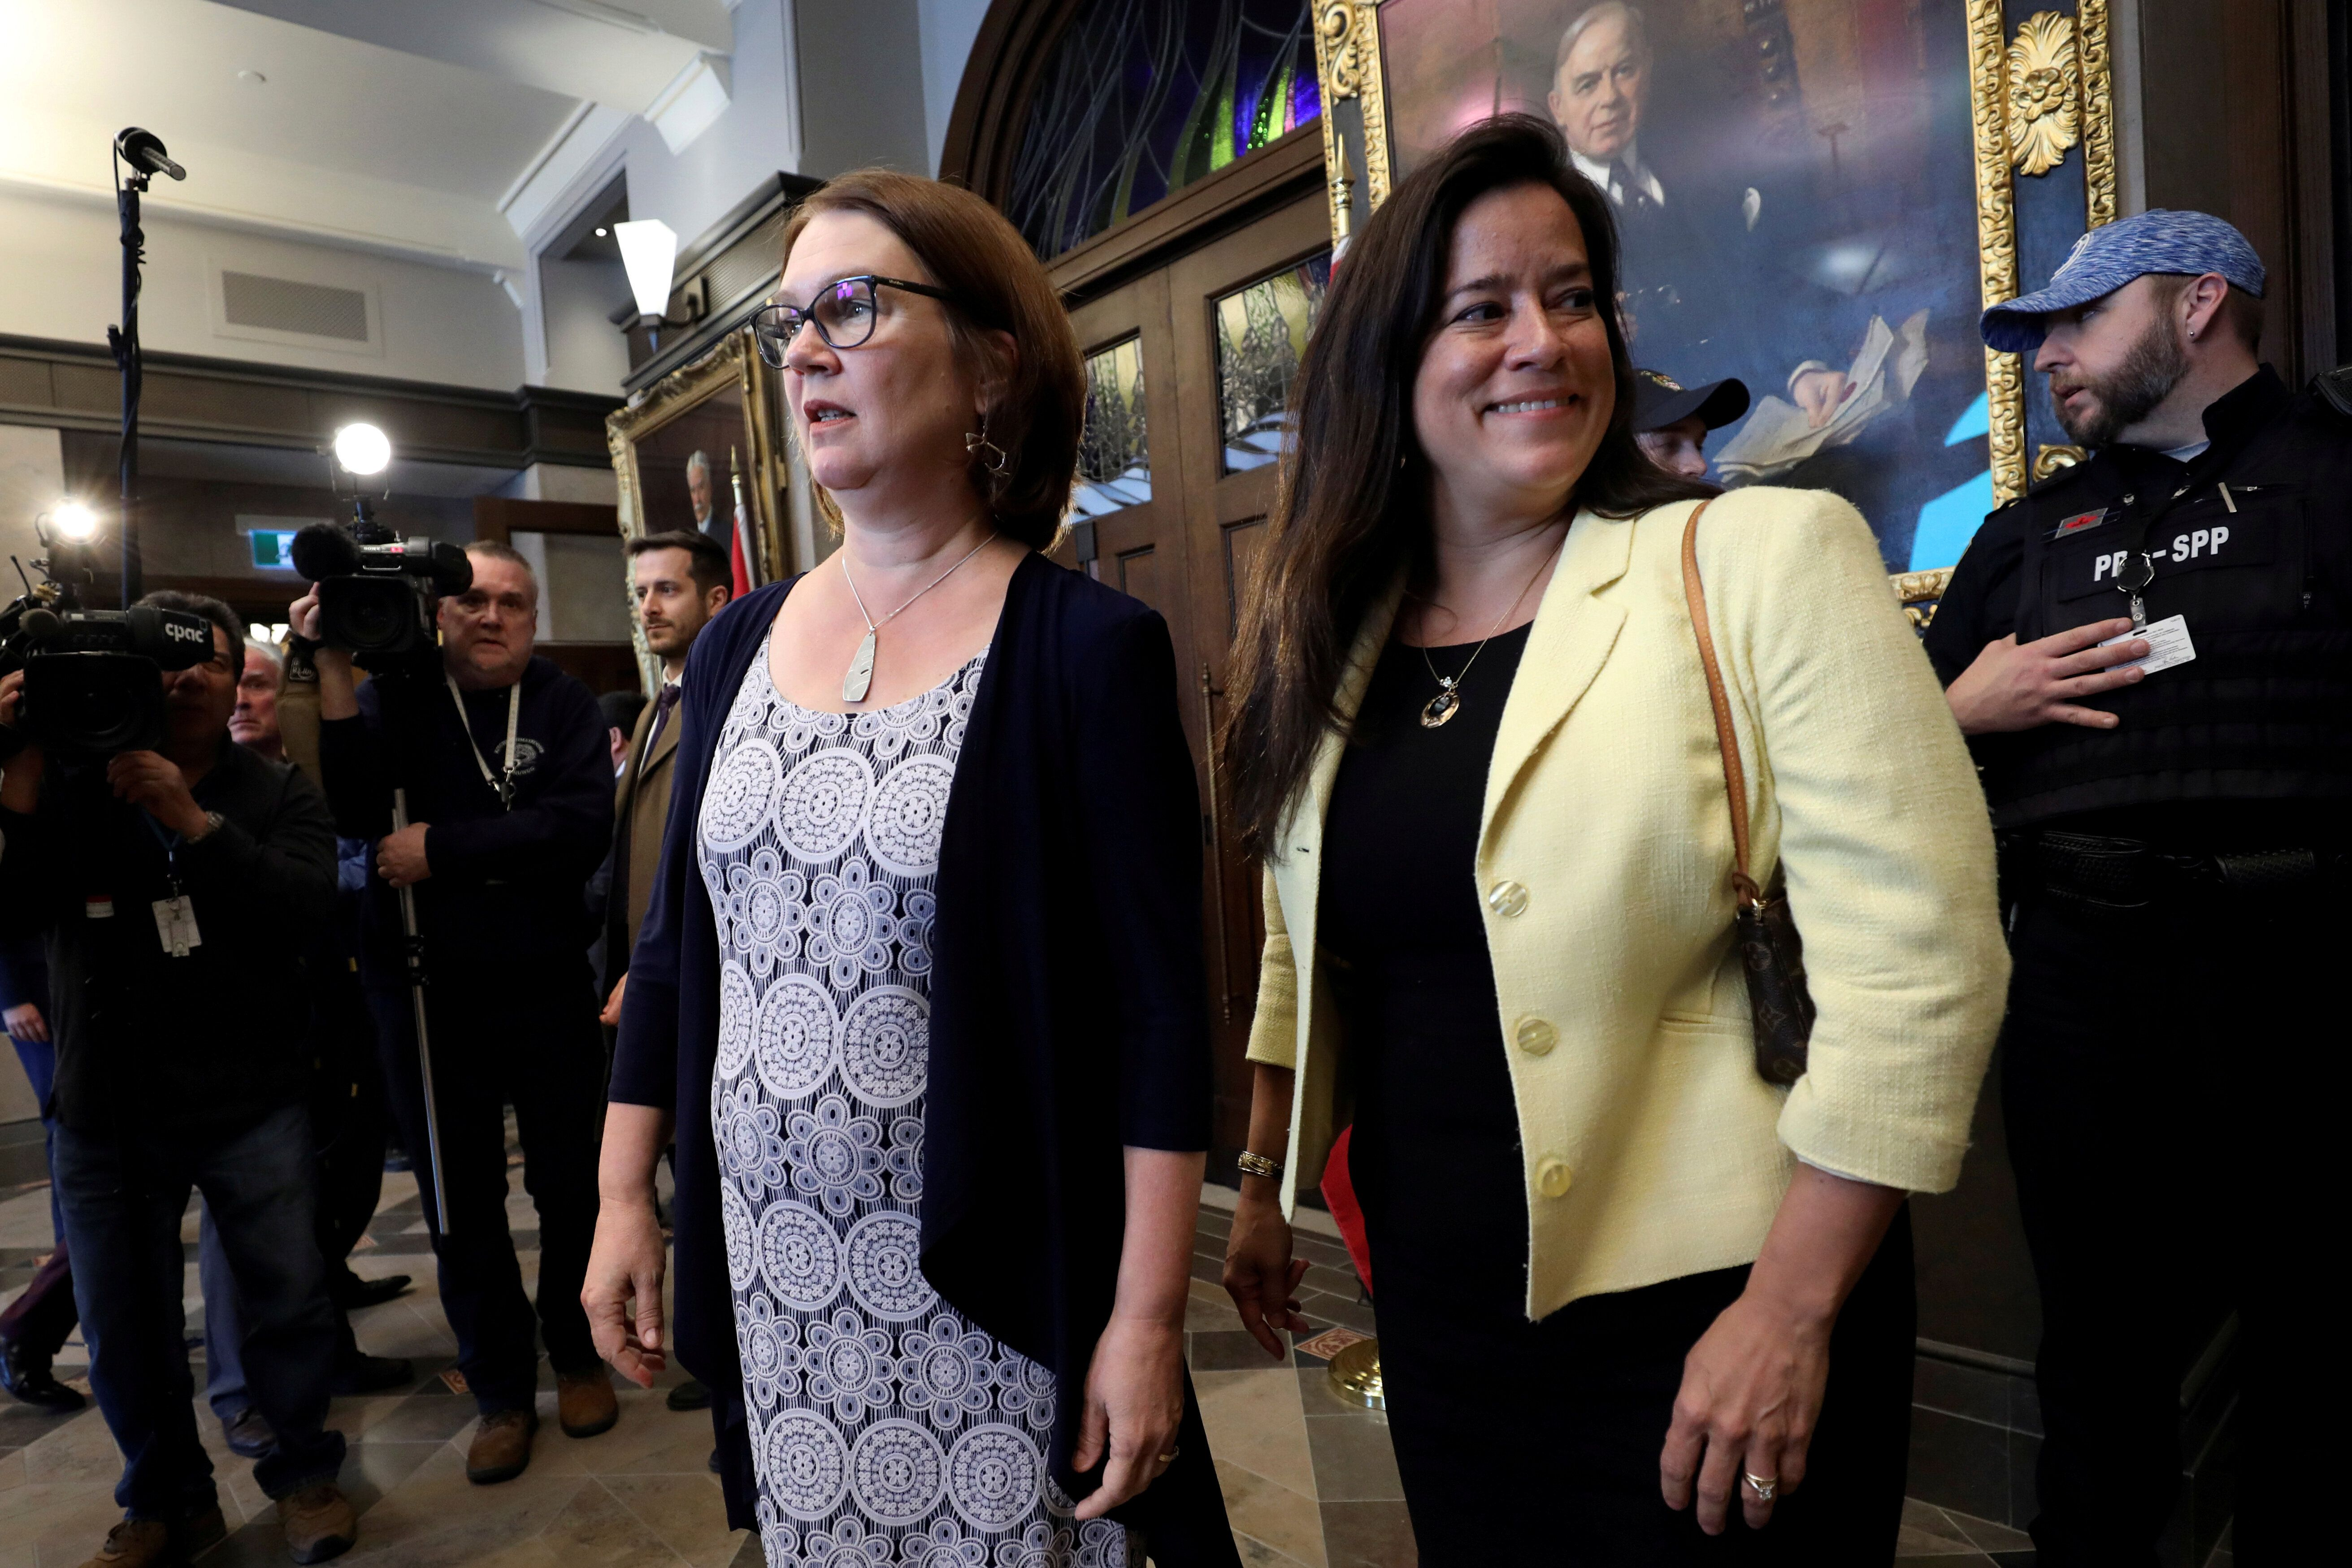 Wilson-Raybould, Philpott To Announce Their Political Futures On